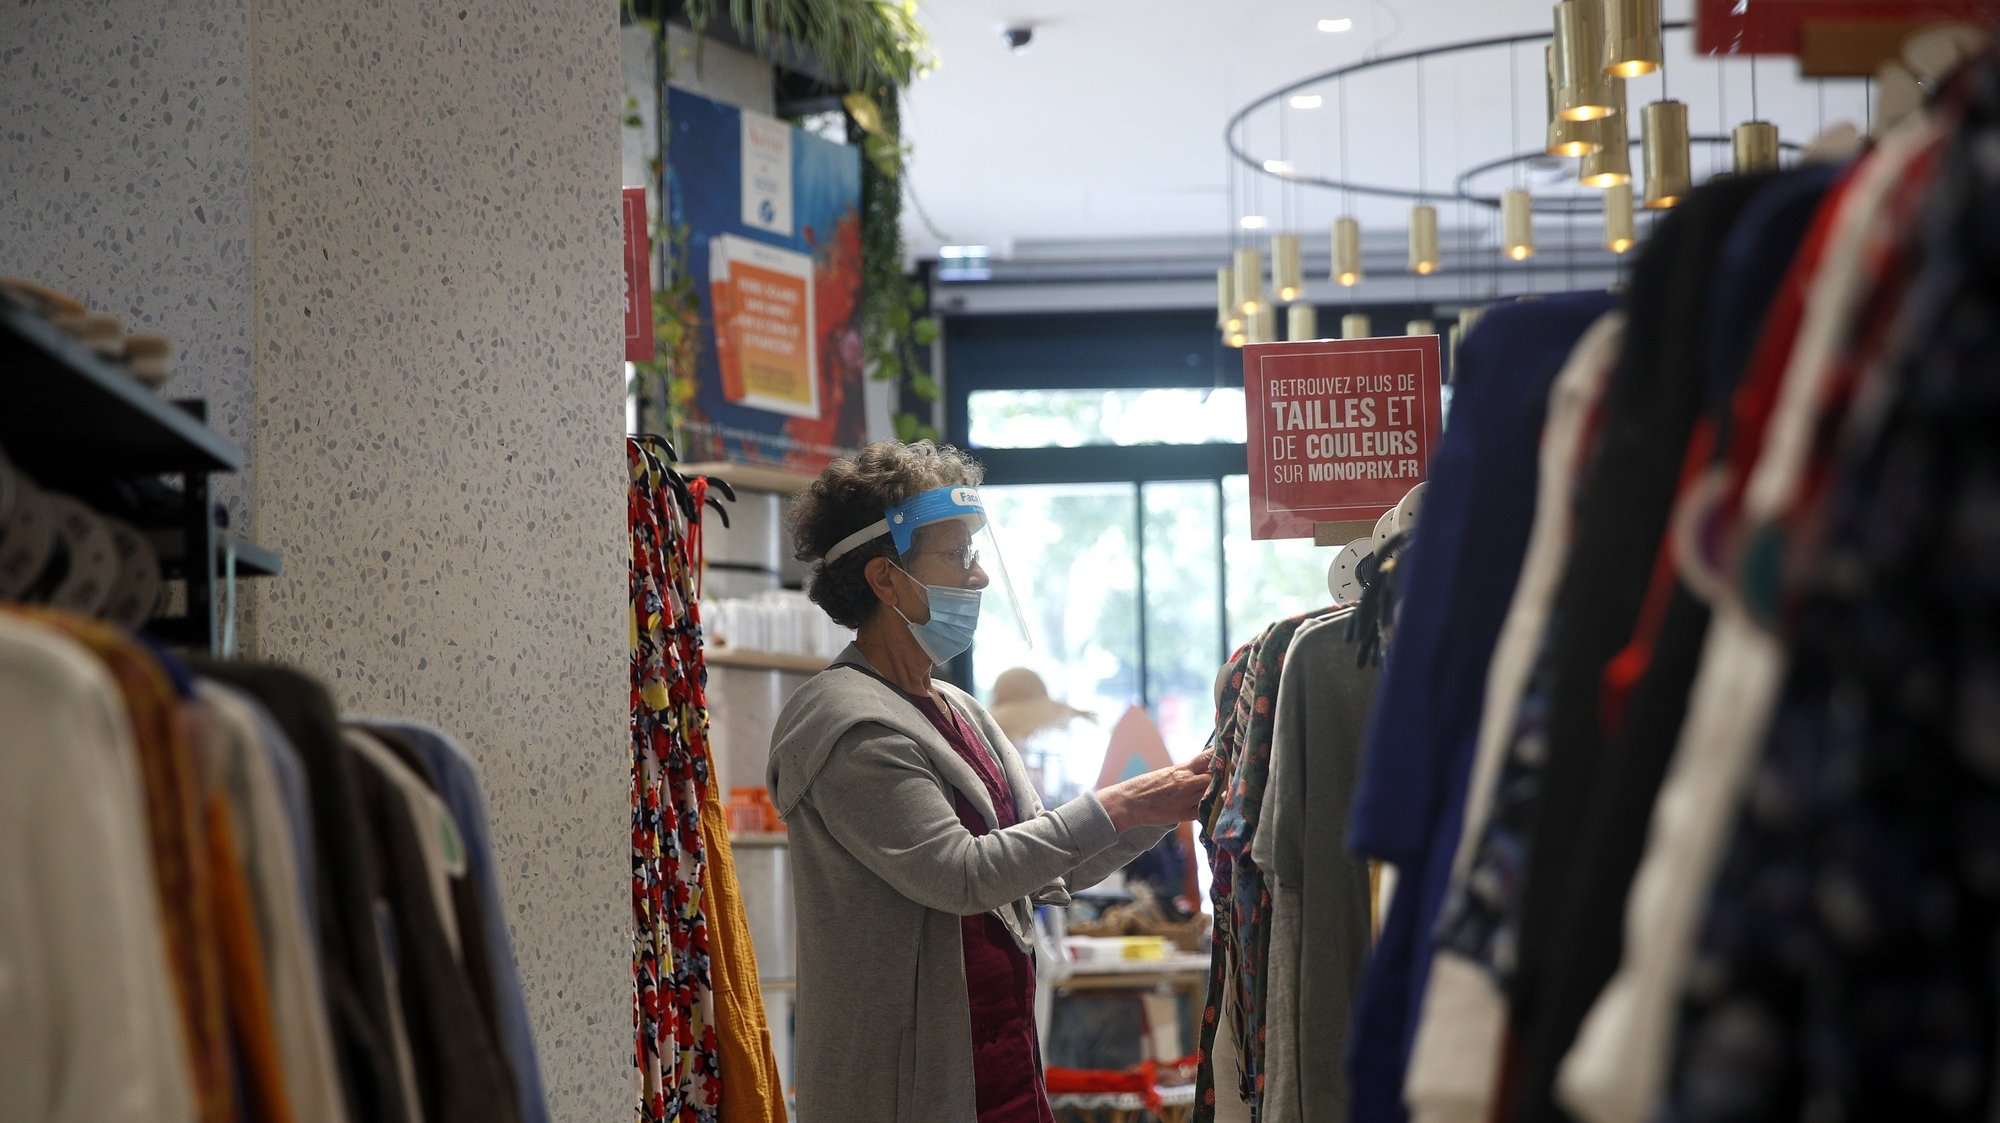 epa08556101 A woman wearing a face mask makes shopping on the Champs Elysee in Paris, France, 20 July 2020. From today, wearing a face mask inside closed public area becomes a duty in an attempt to stop the widespread of the SARS-CoV-2 coronavirus causing the Covid-19 disease.  EPA/YOAN VALAT